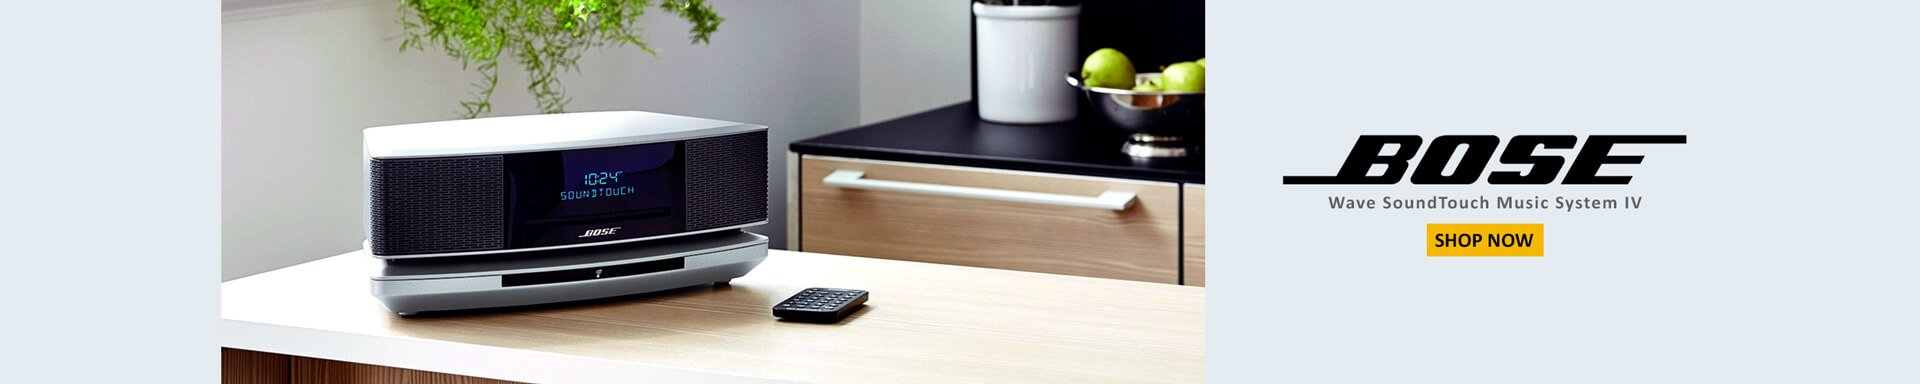 Bose_Wave Sound Touch Music System IV